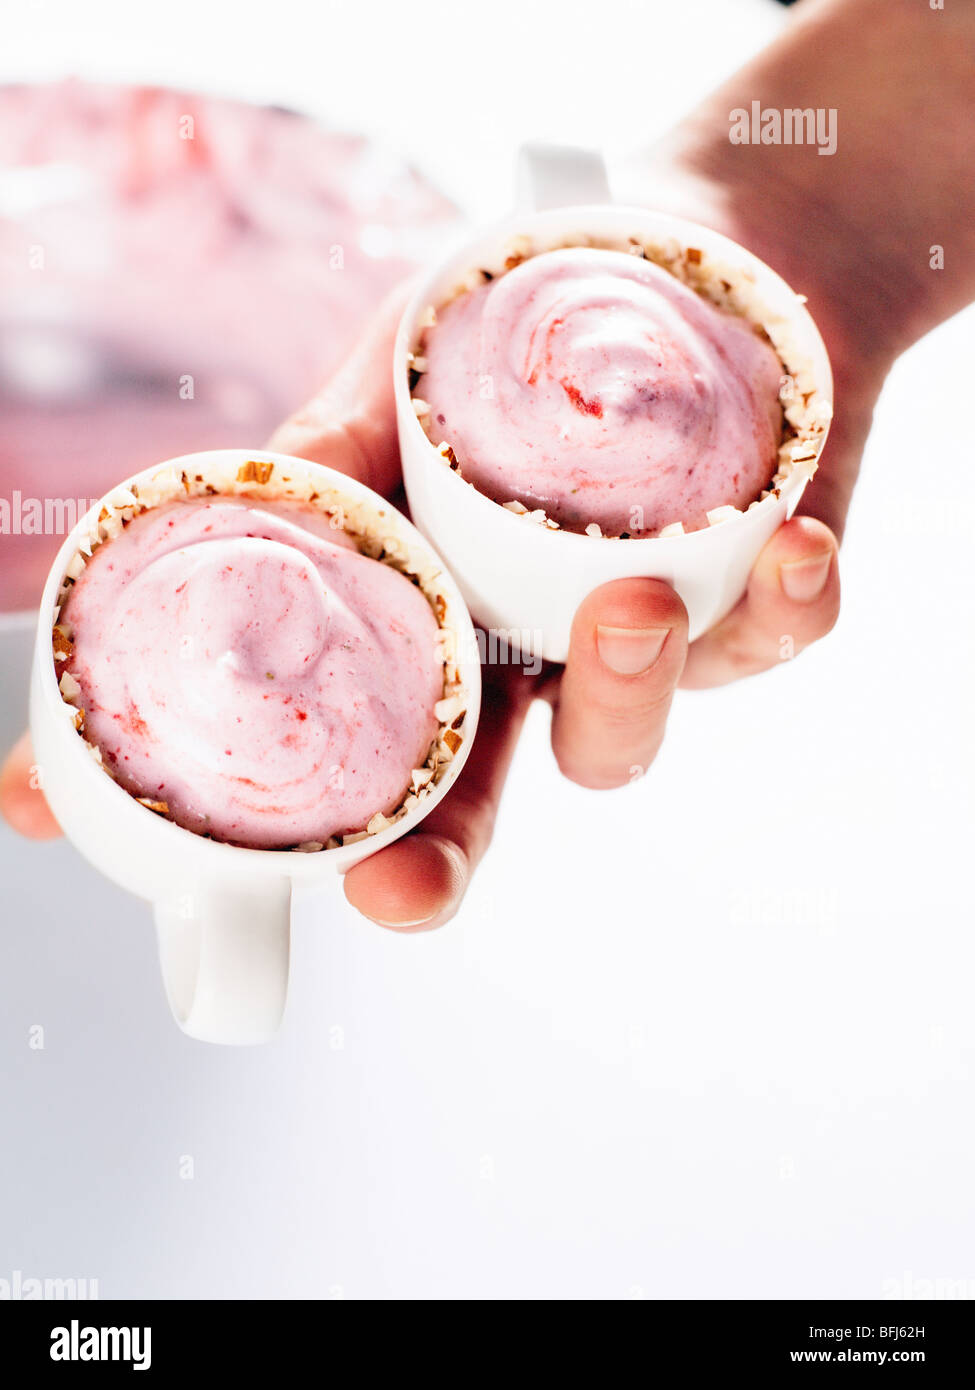 Strawberry mousse, Sweden. - Stock Image